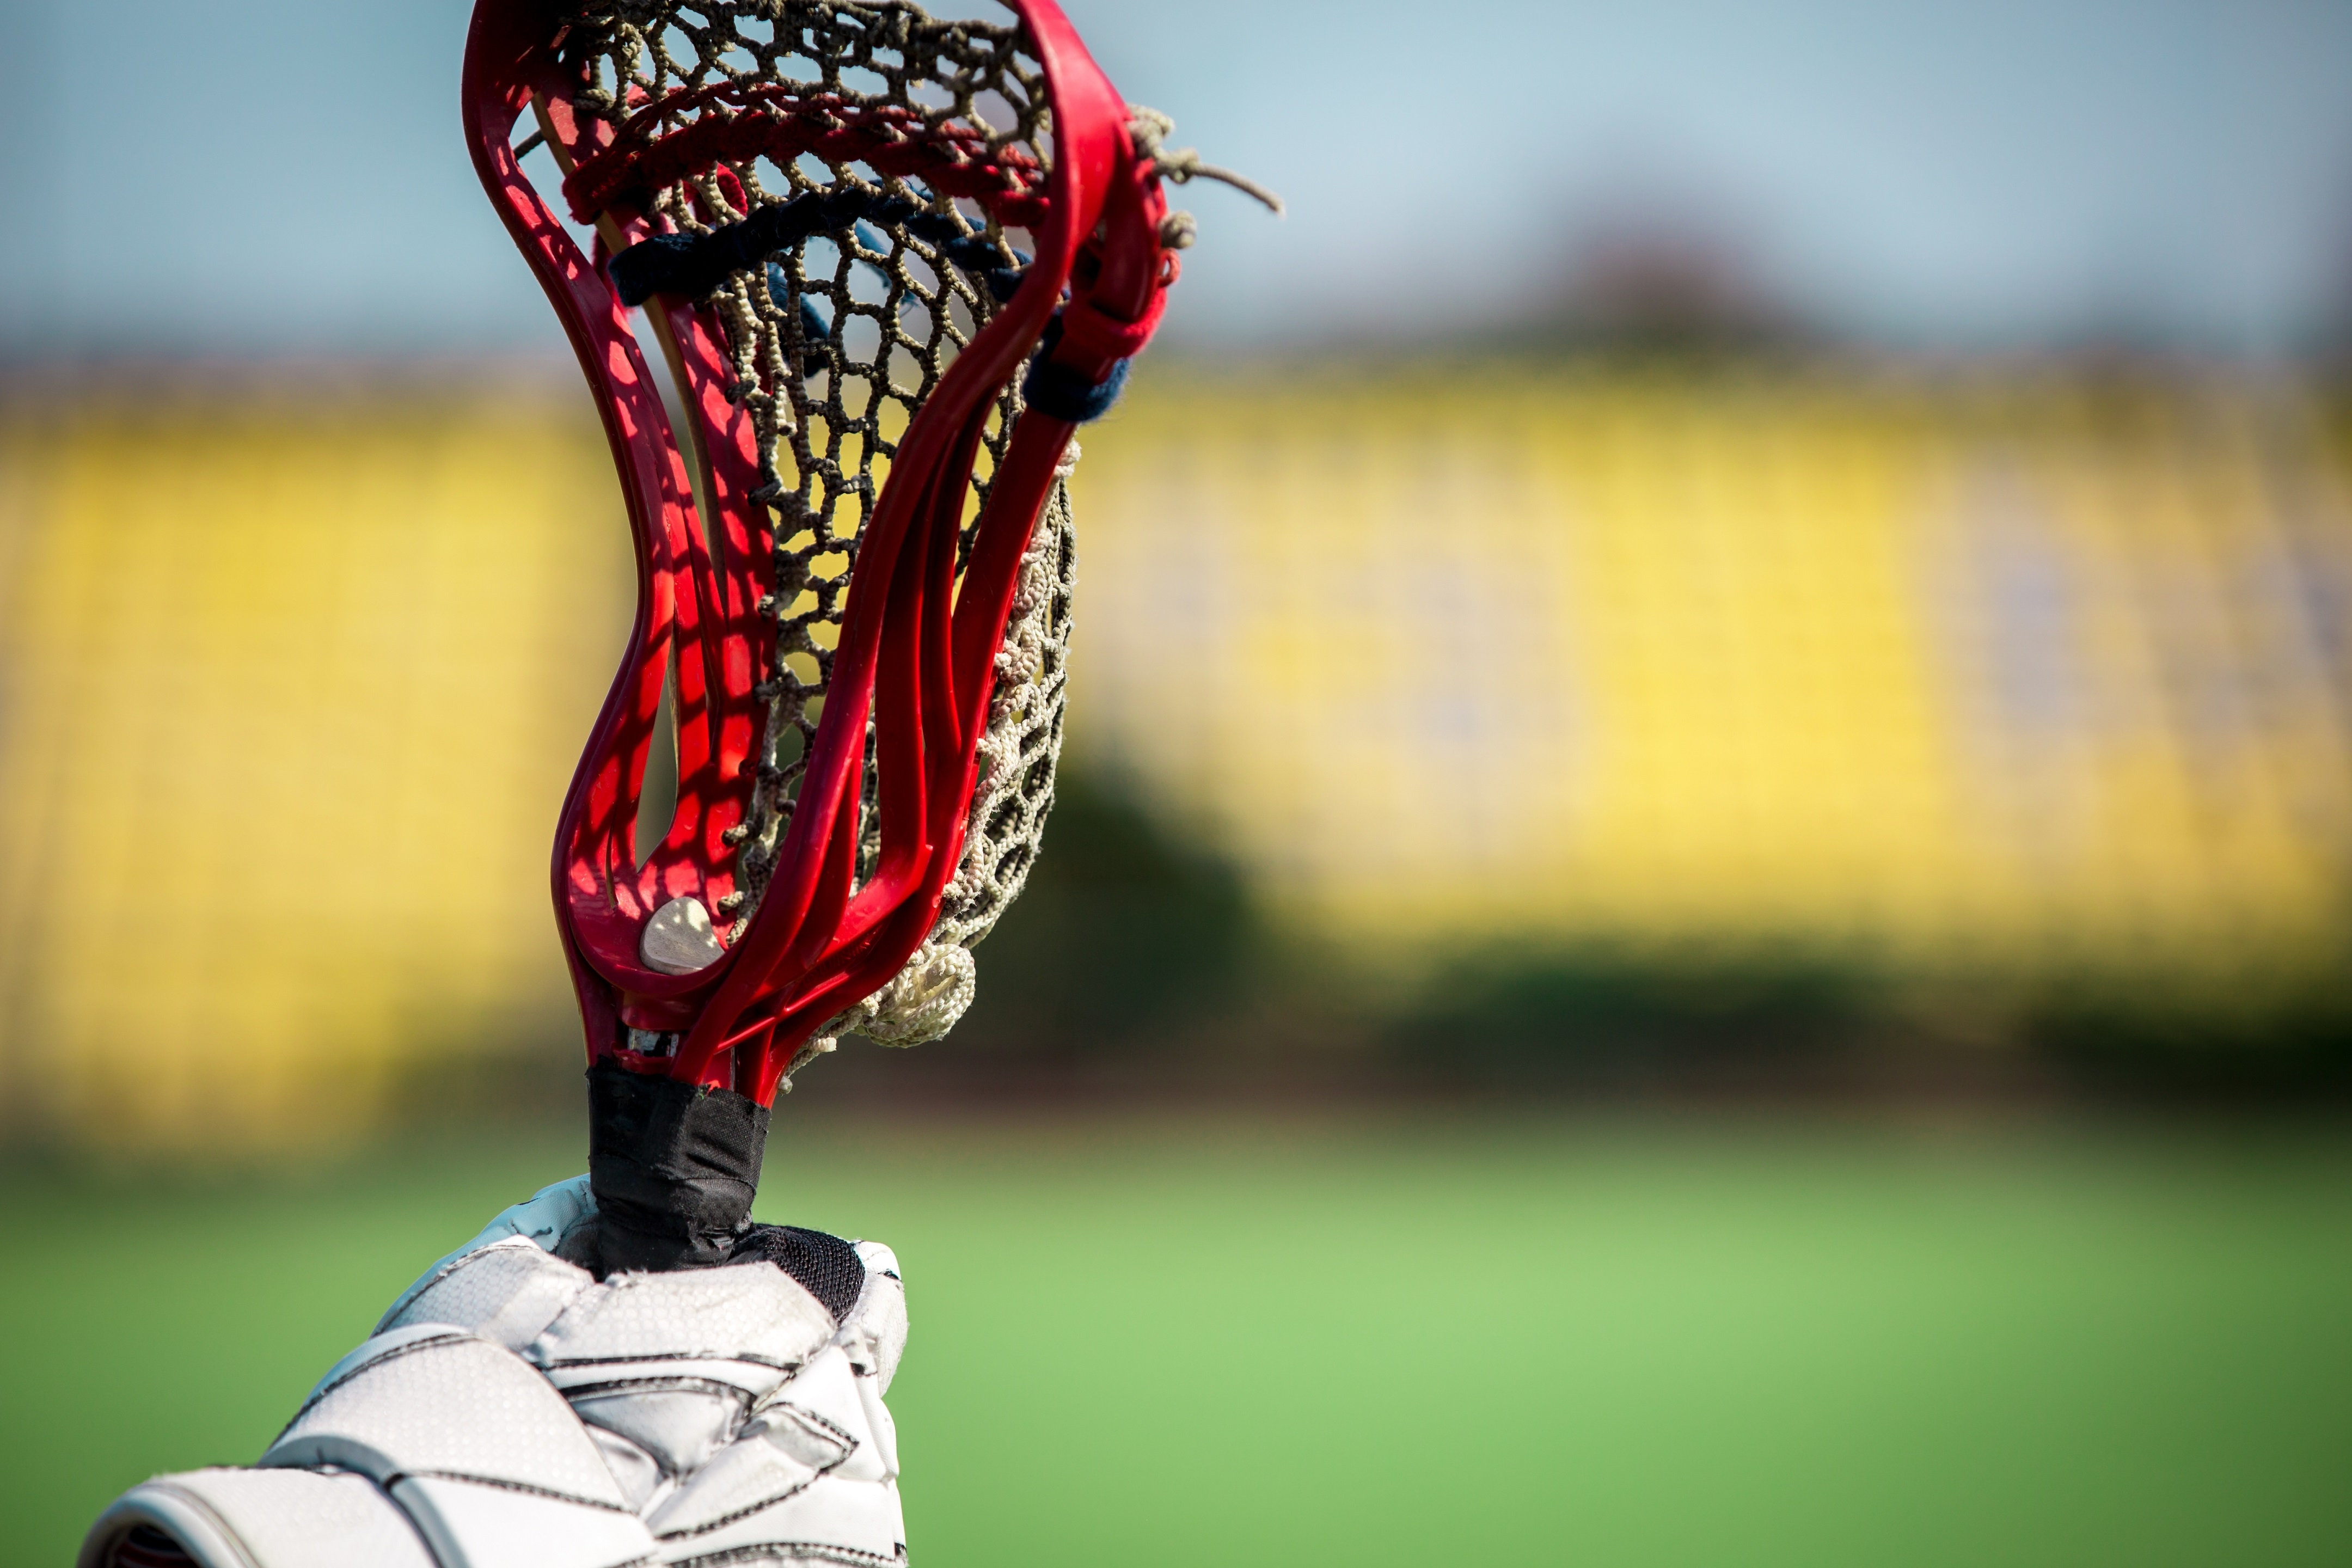 Traditional or Lacrosse mesh?